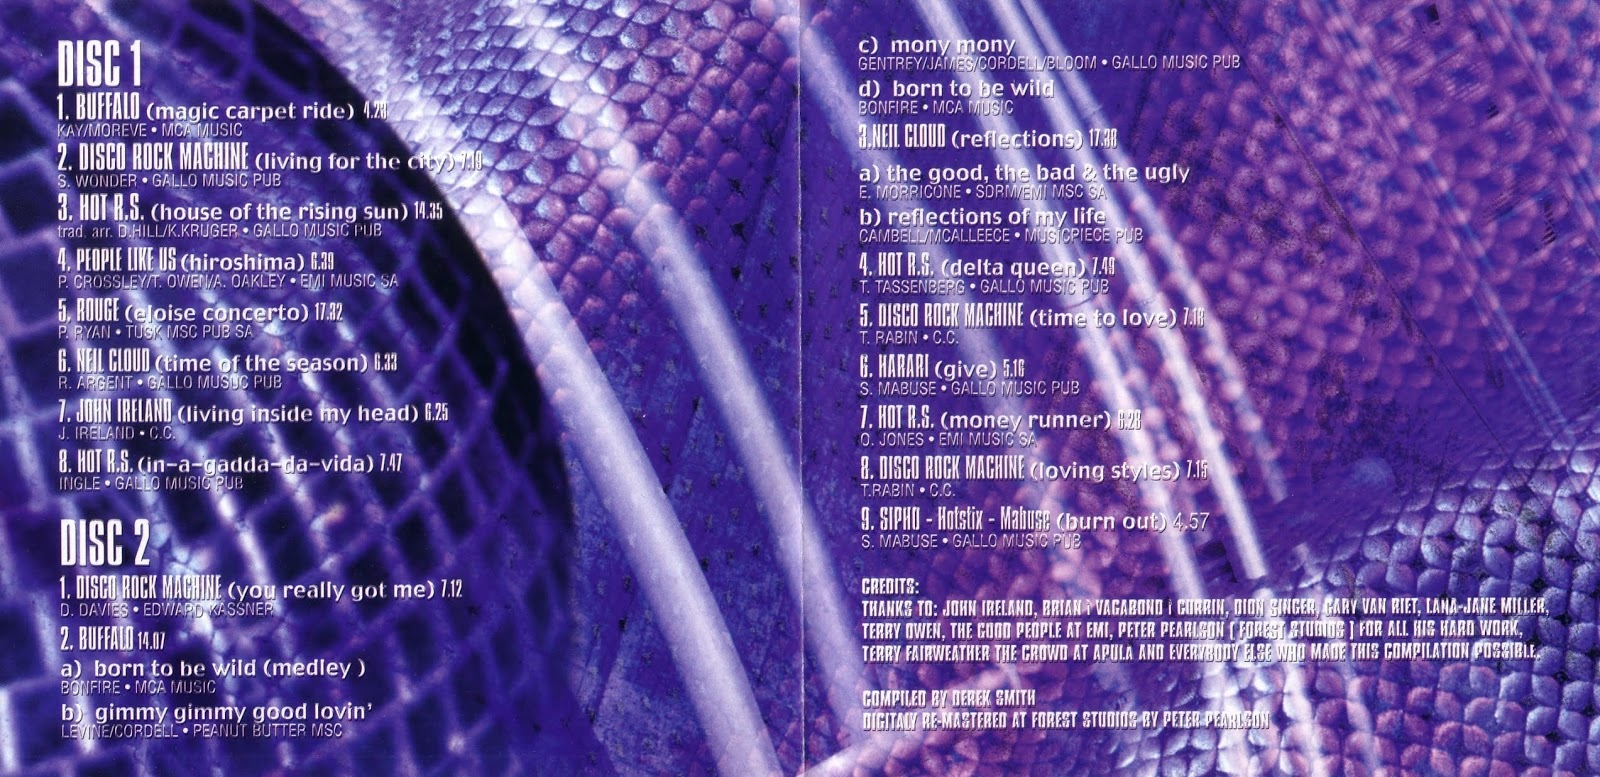 RETRO DISCO HI-NRG: DISCO Fever - Various Artists 2CD